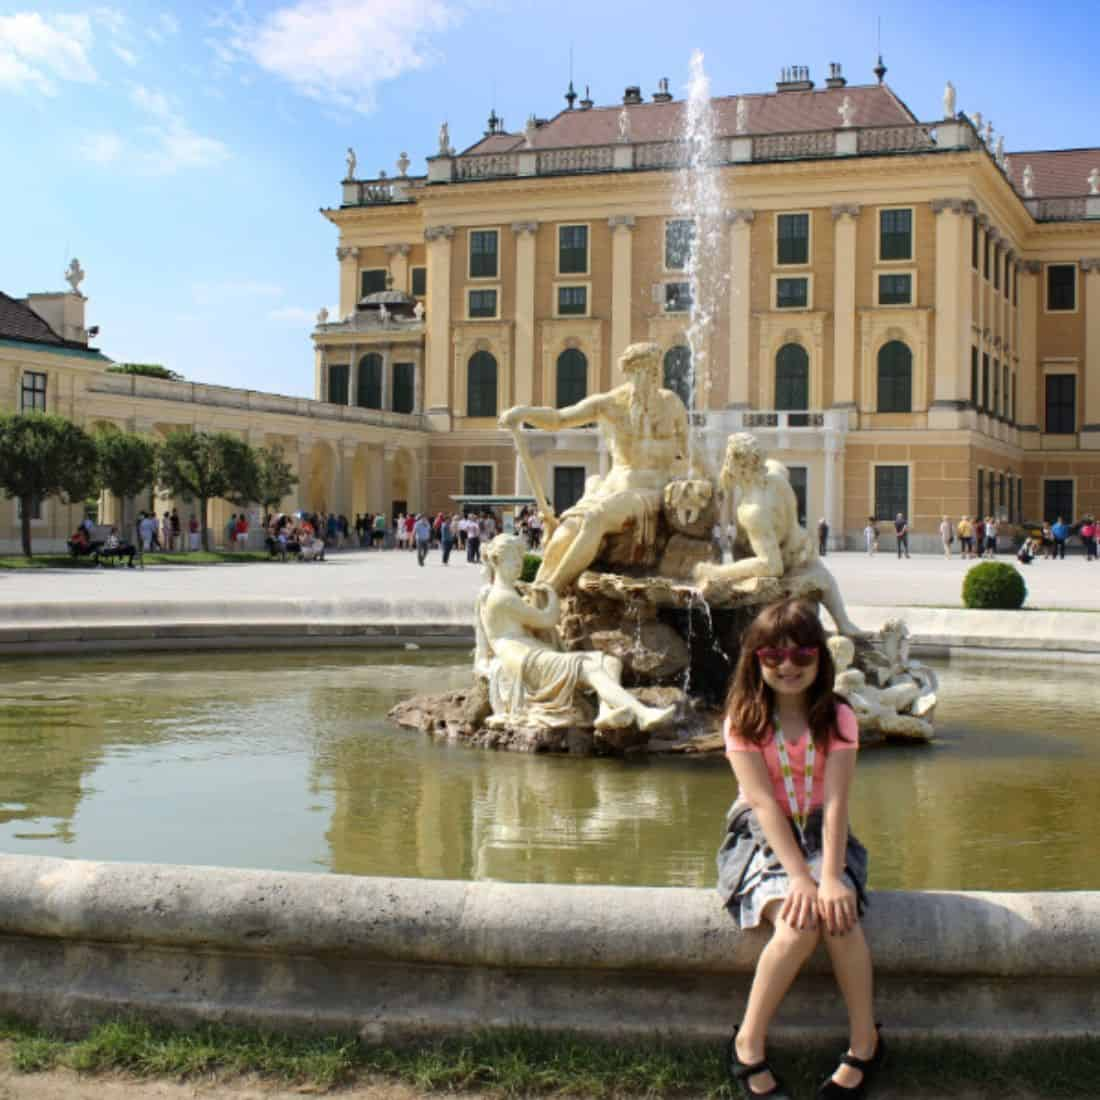 Little girl sitting on the edge of a fountain in front of a massive orange and cream palace